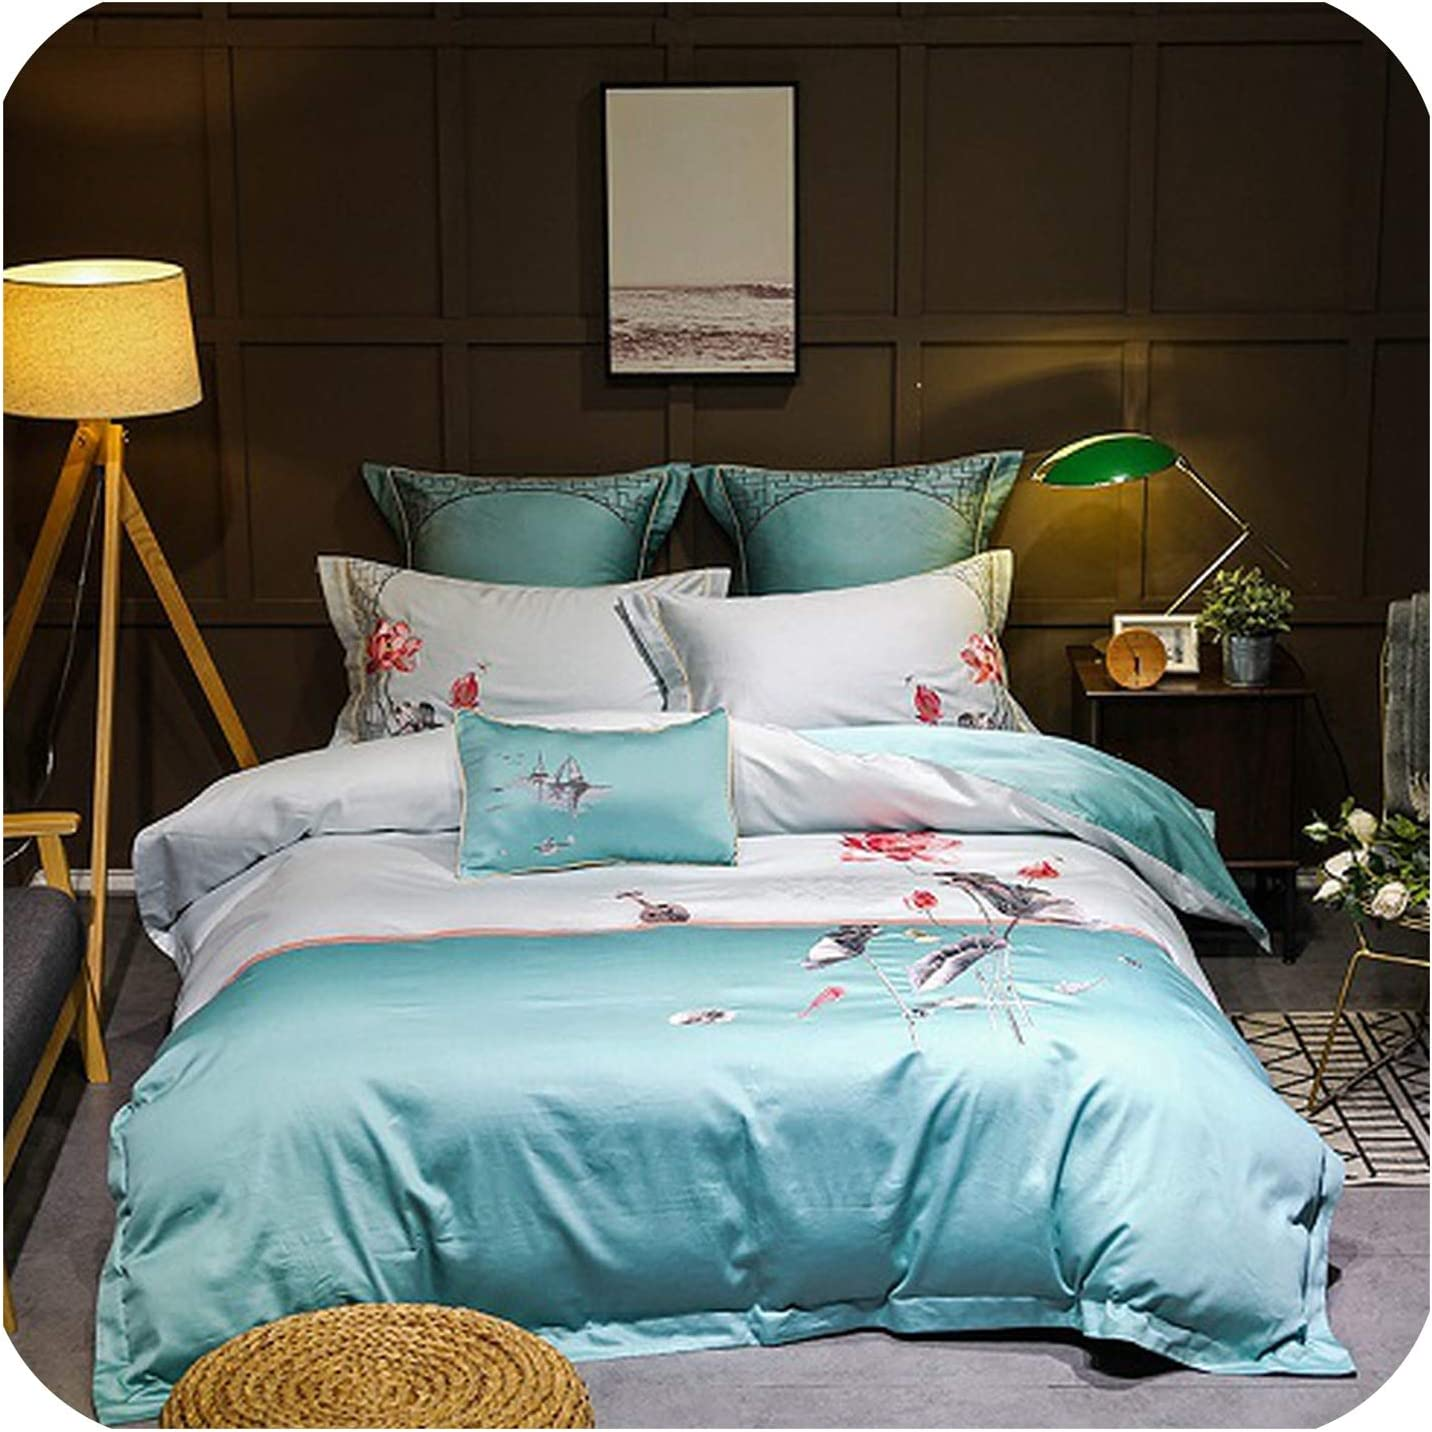 S-paw Oriental Embroidery Golden Grey Bedding Set Queen King Size Egyptian Cotton Bed Set Duvet Cover Bed Sheet/Linen Set,Color 2,King Size 4Pcs